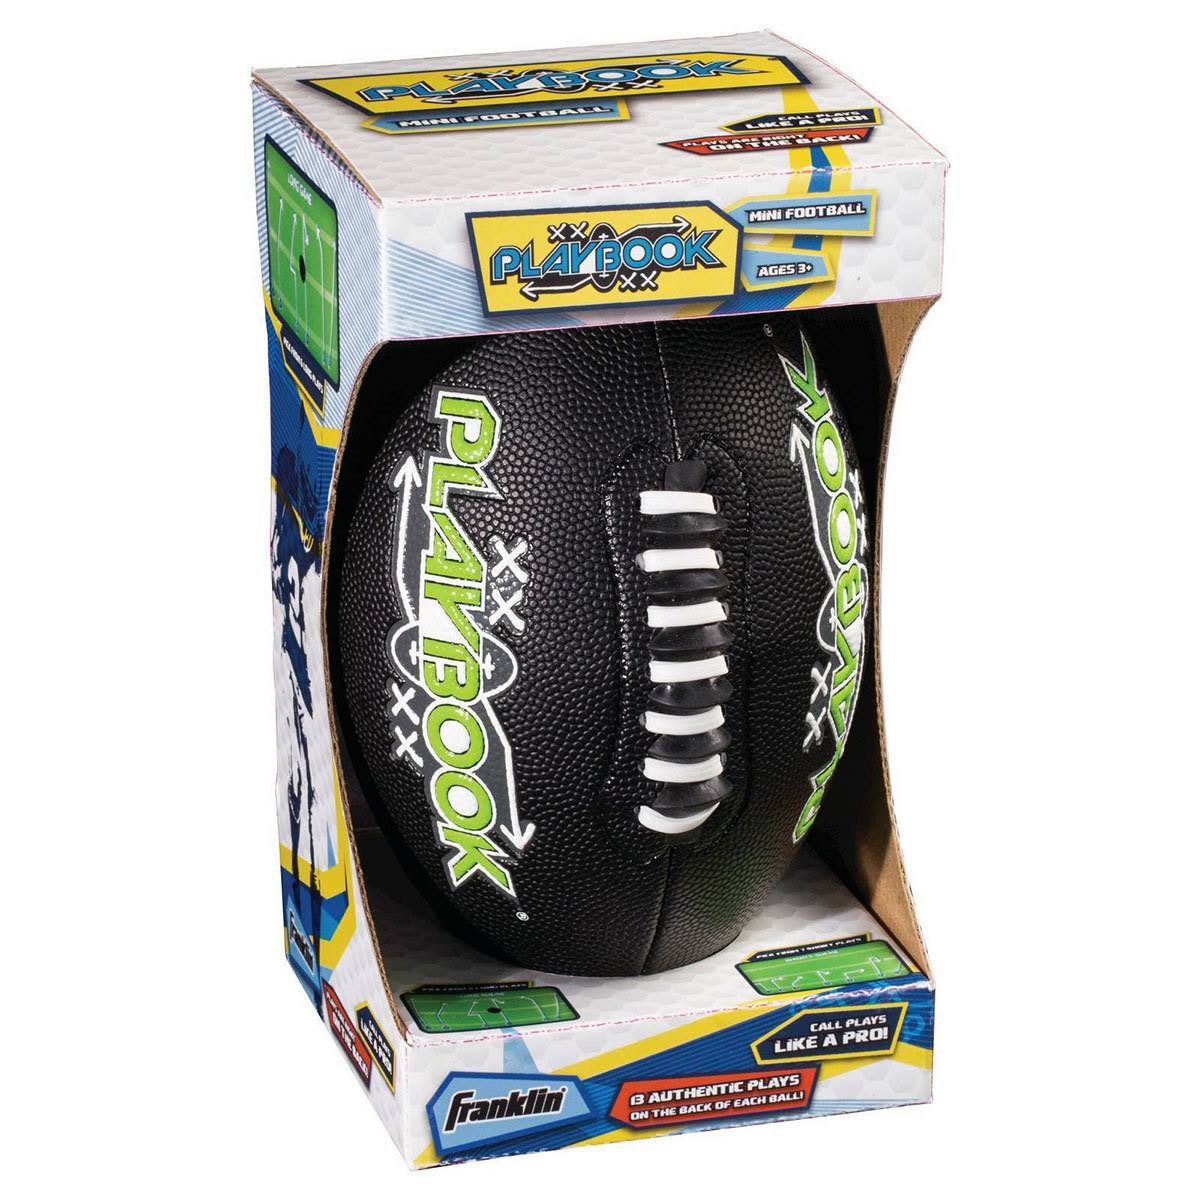 Franklin Mini Playbook Football - Colors may vary